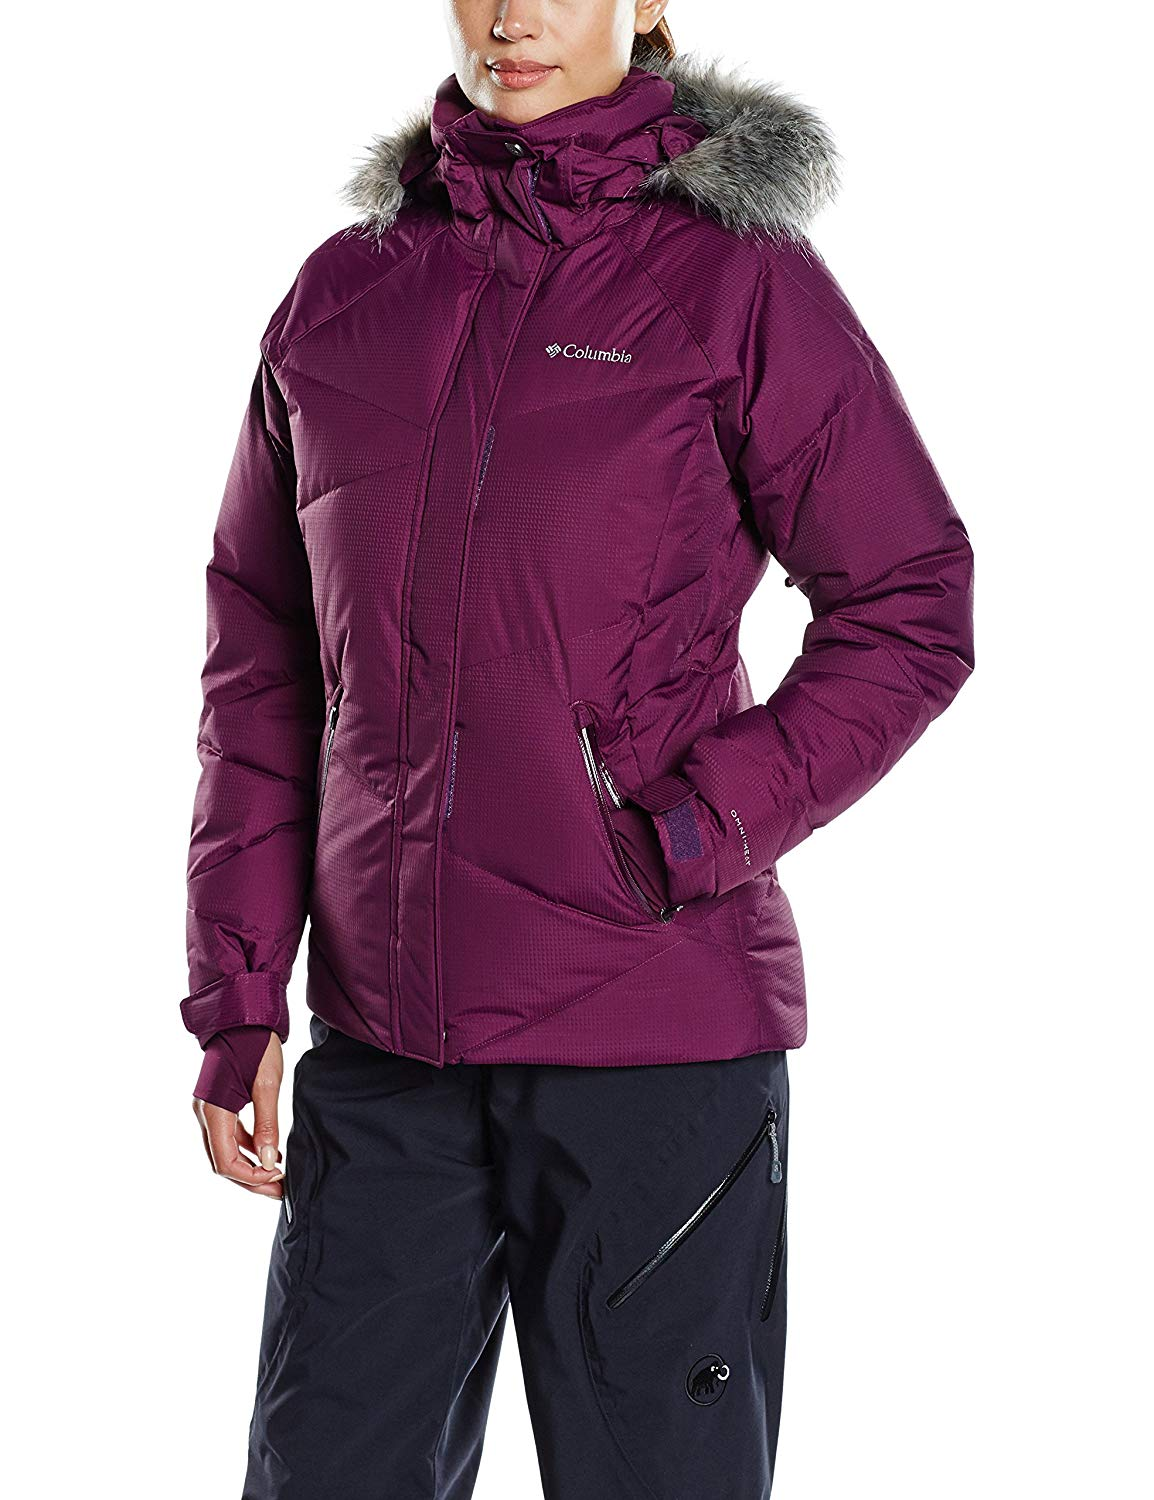 Columbia Women's Lay D Down Jacket Sizes